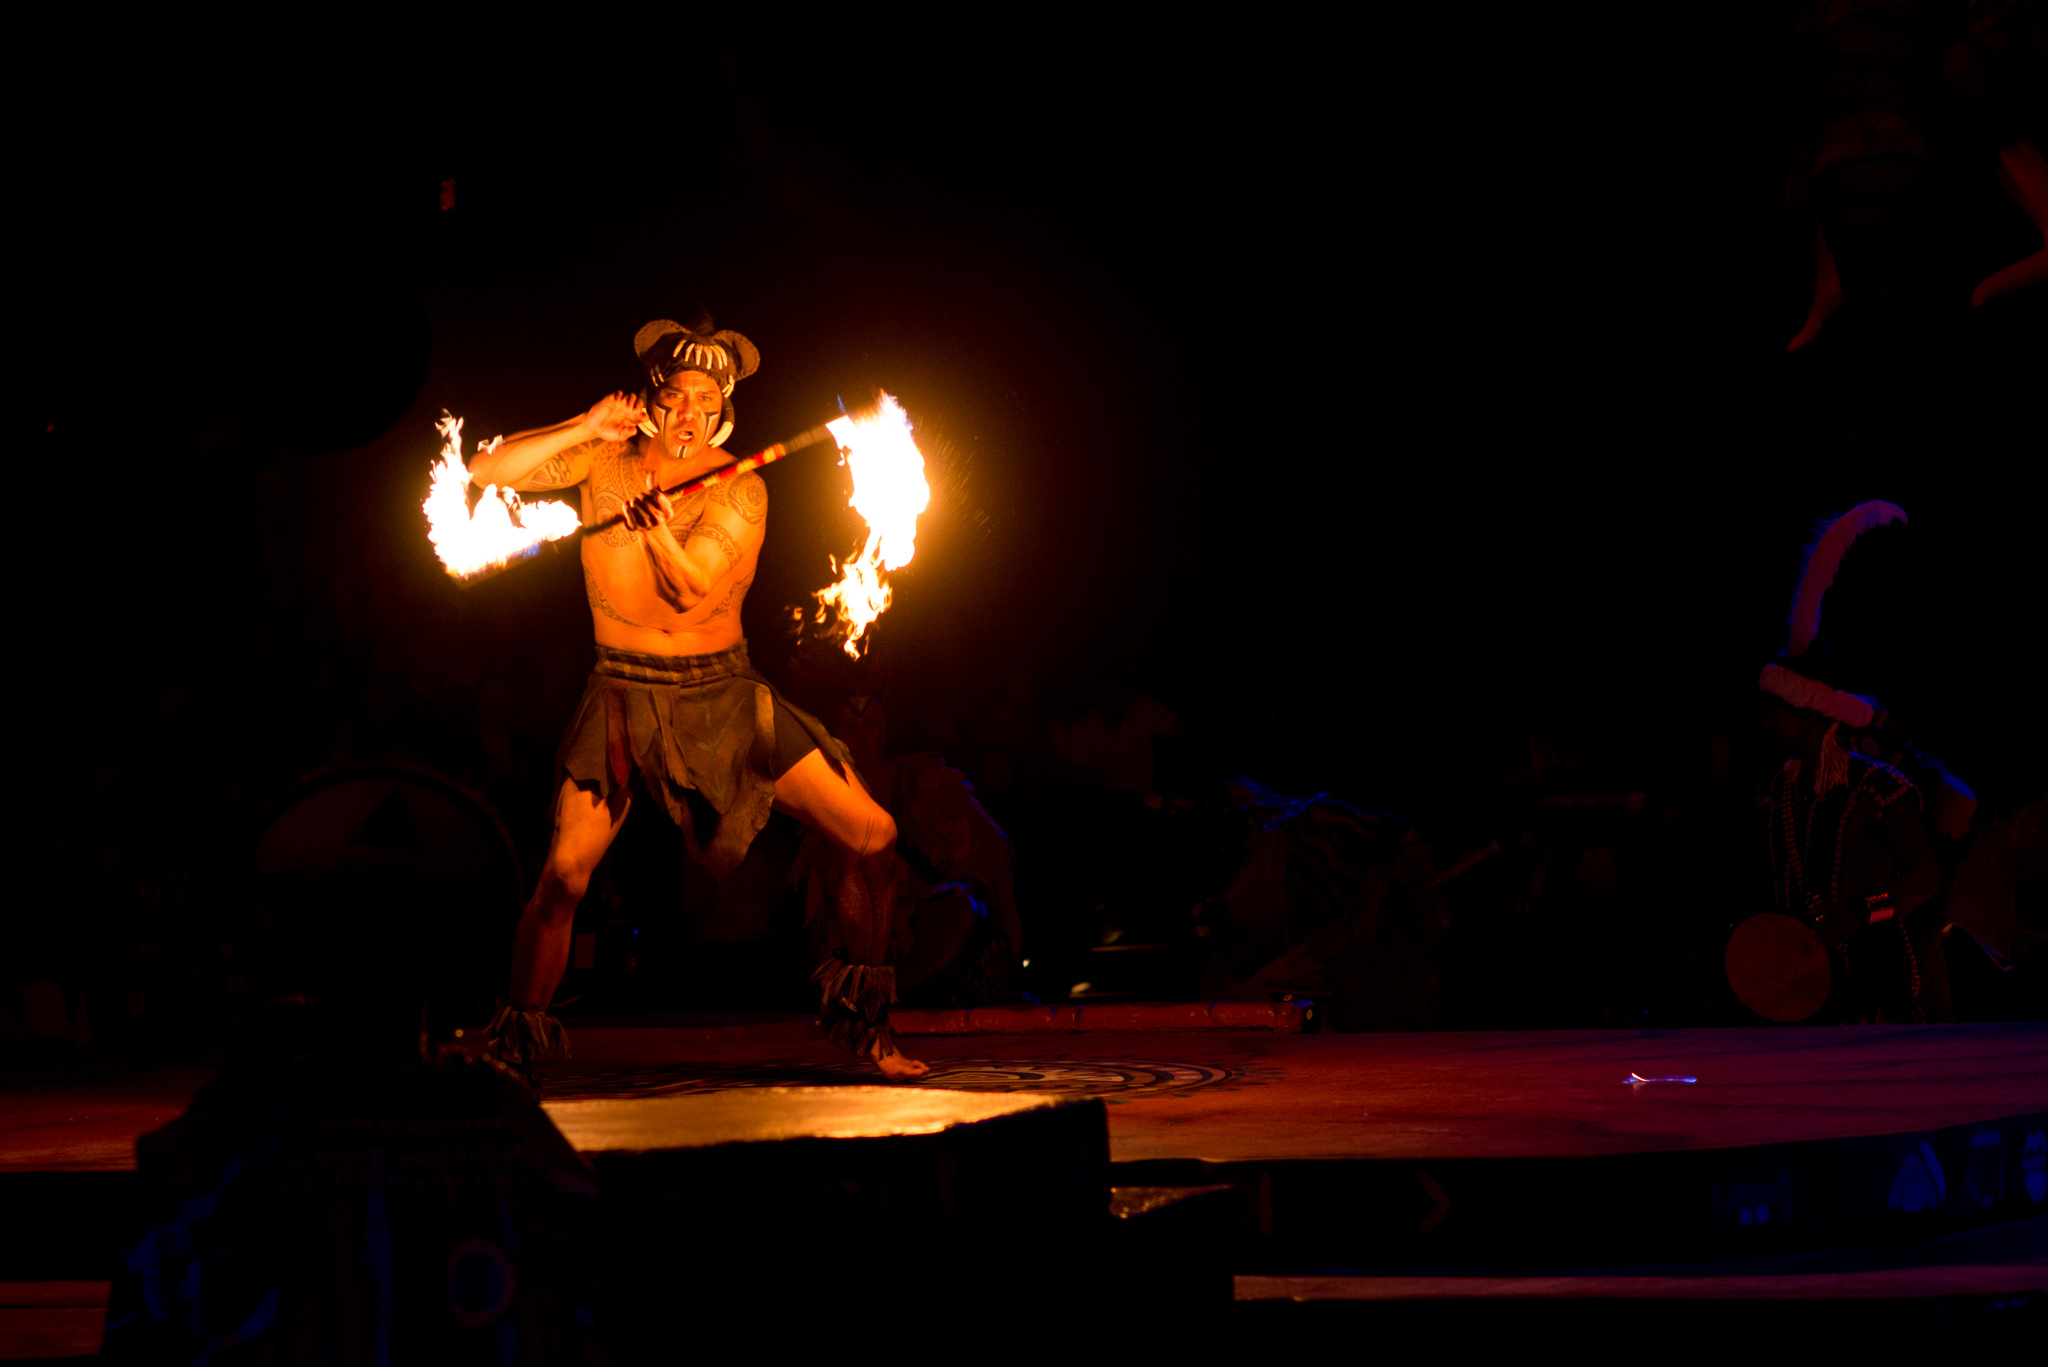 Fire Spinning at Disney's Animal Kingdom - Festival of the Lion King